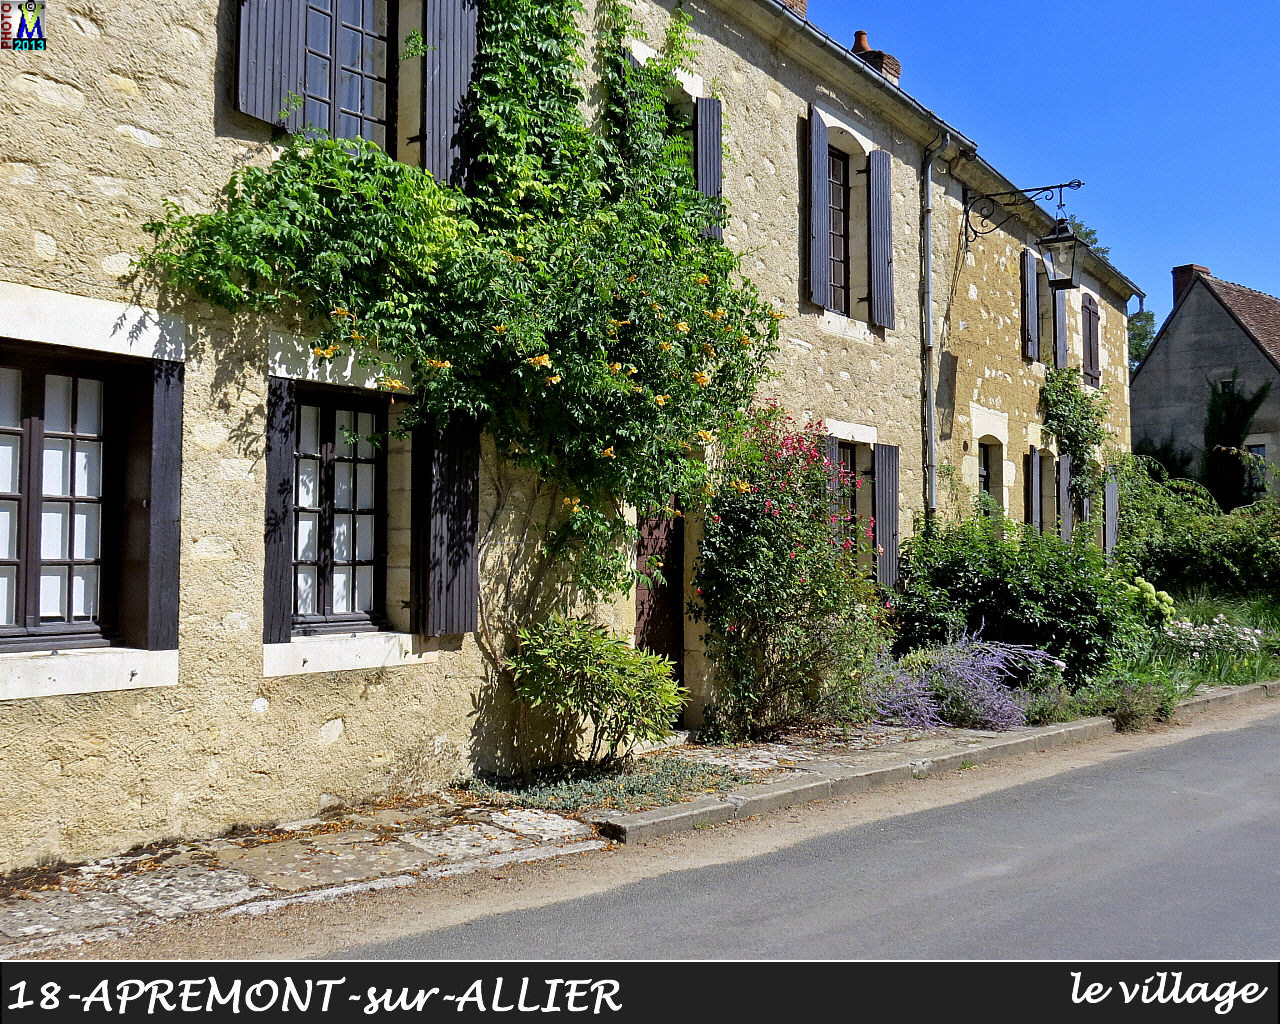 18APREMONT-ALLIER_village_120.jpg